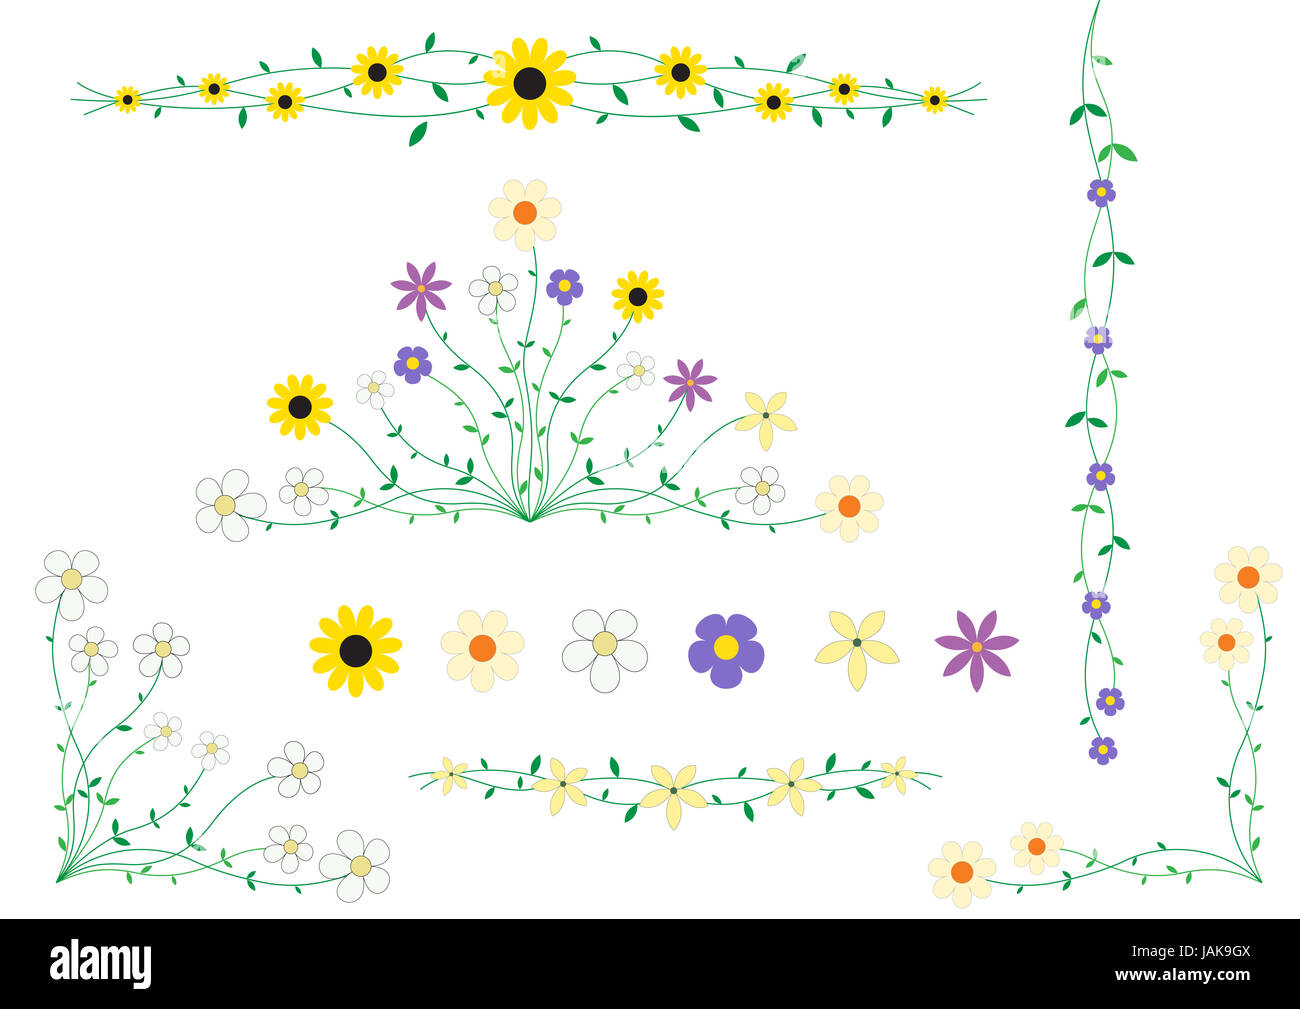 Beautiful flowers on small stalks scenery for cards stock photo beautiful flowers on small stalks scenery for cards izmirmasajfo